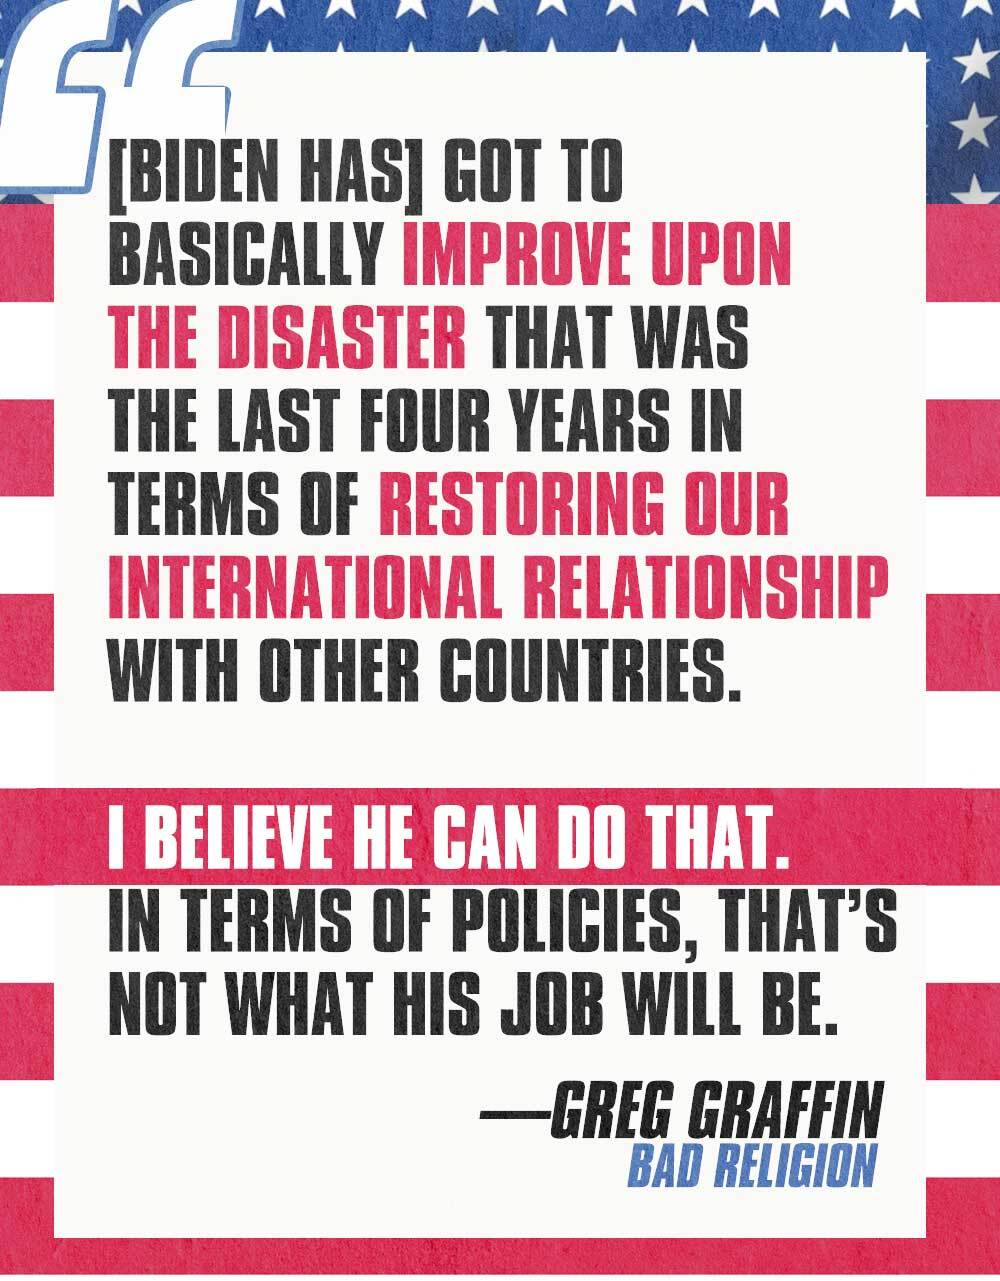 greg gaffin pull quote